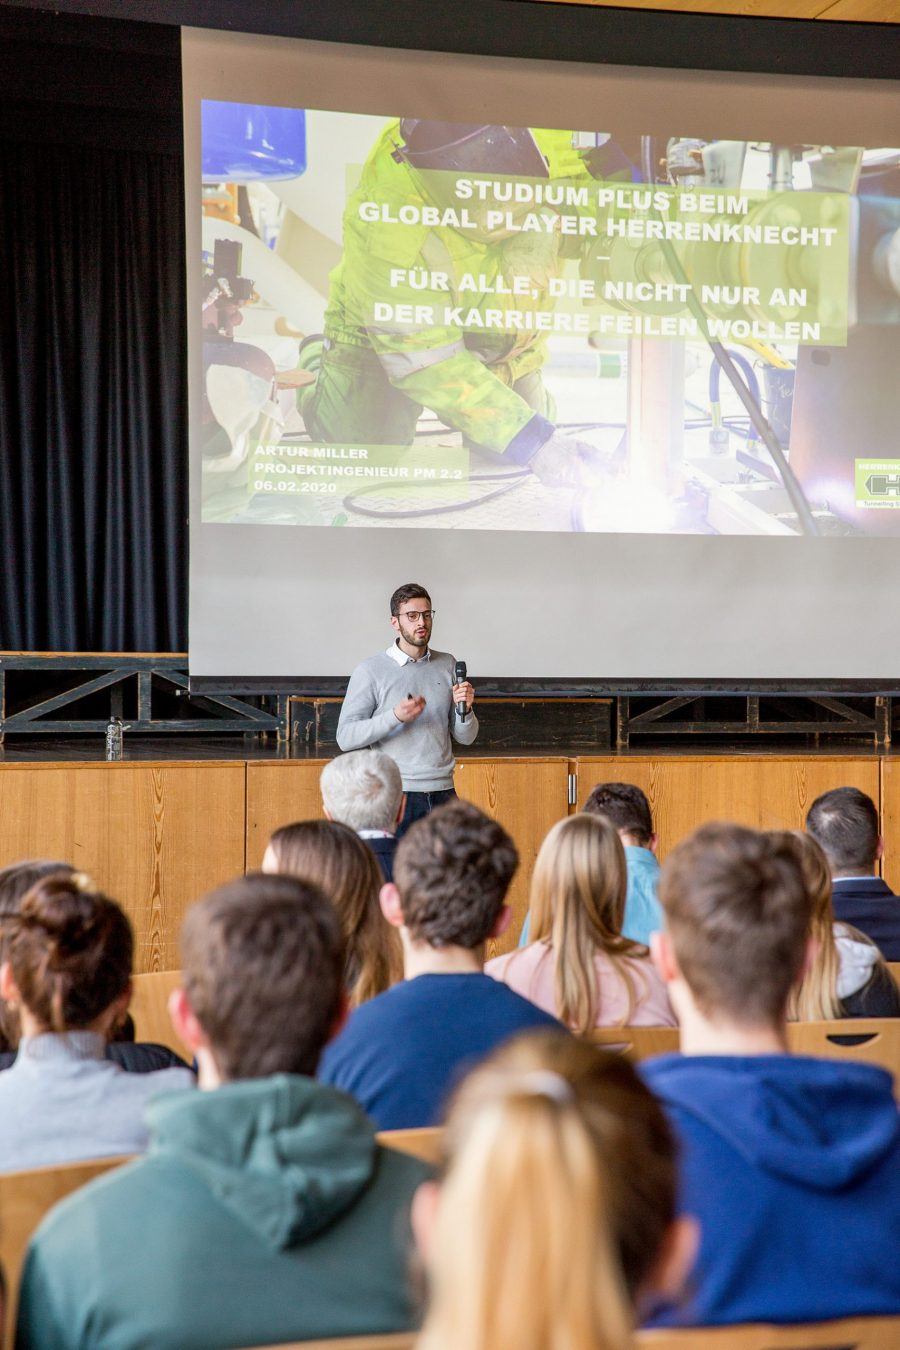 Artur Miller, project engineer at Herrenknecht AG, gave the pupils practical tips for their path to becoming an engineer.